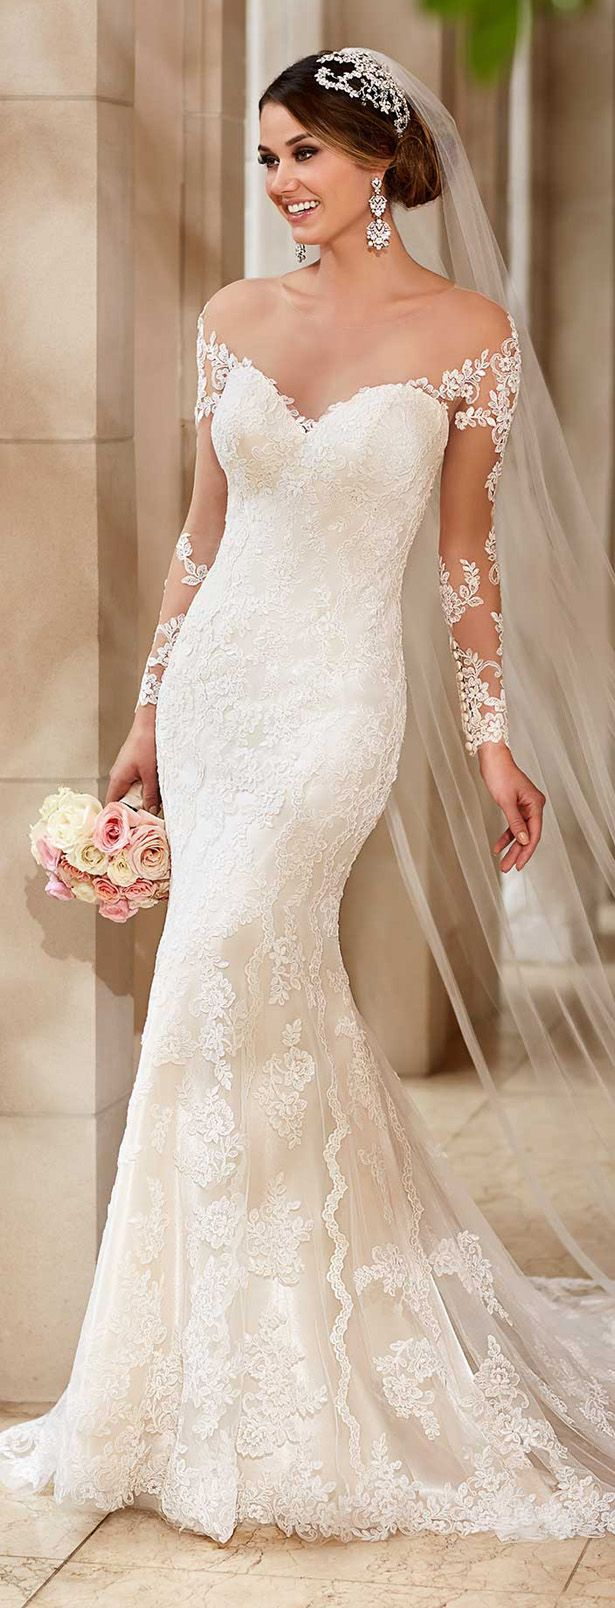 stella stella wedding dressing Stella York Spring Wedding Dresses Collection http www tulleandchantilly